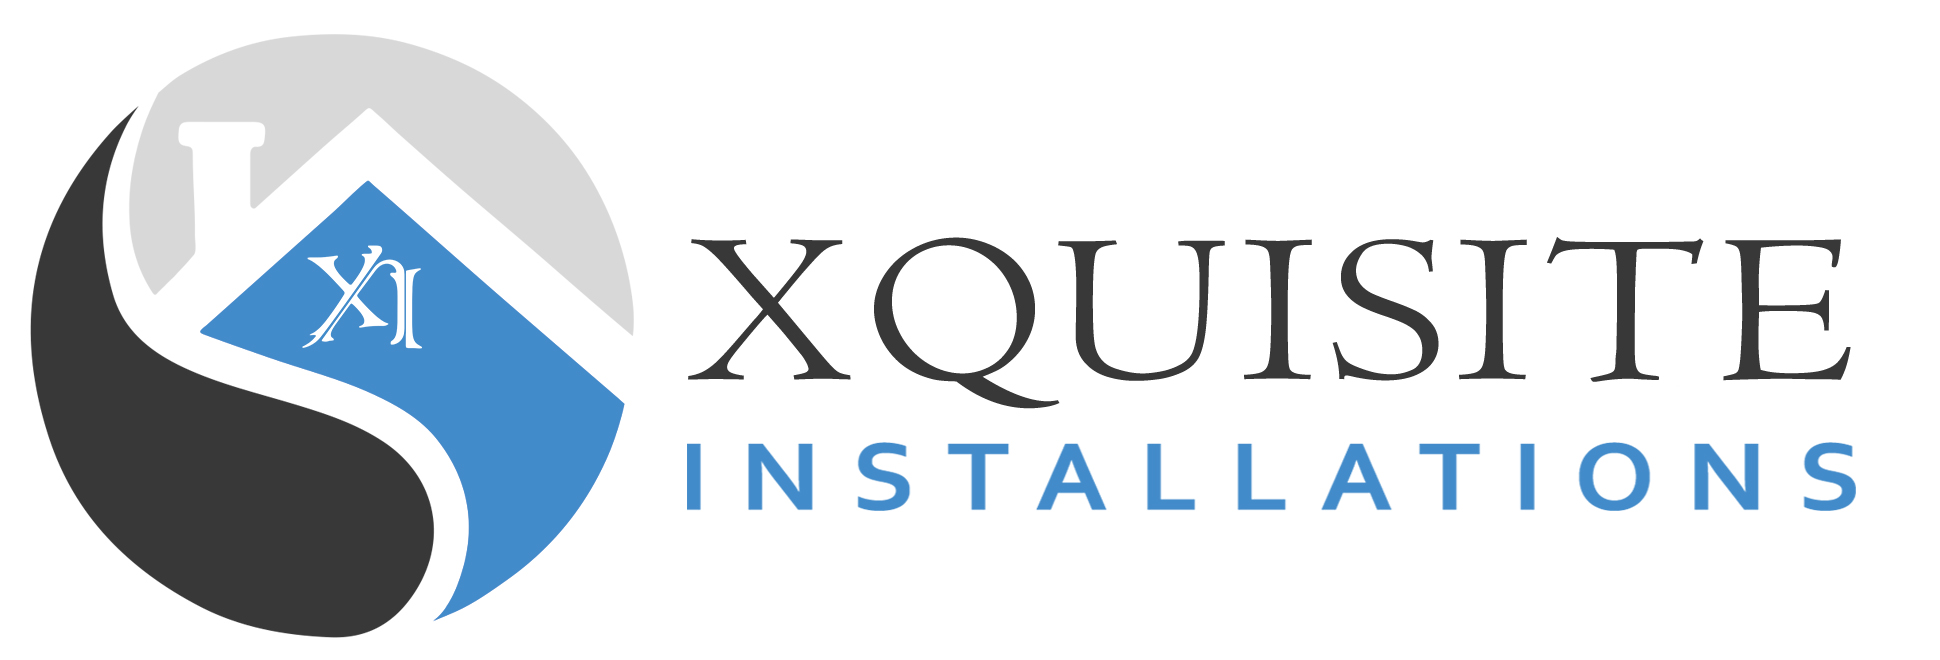 Xquisite Installations, Inc